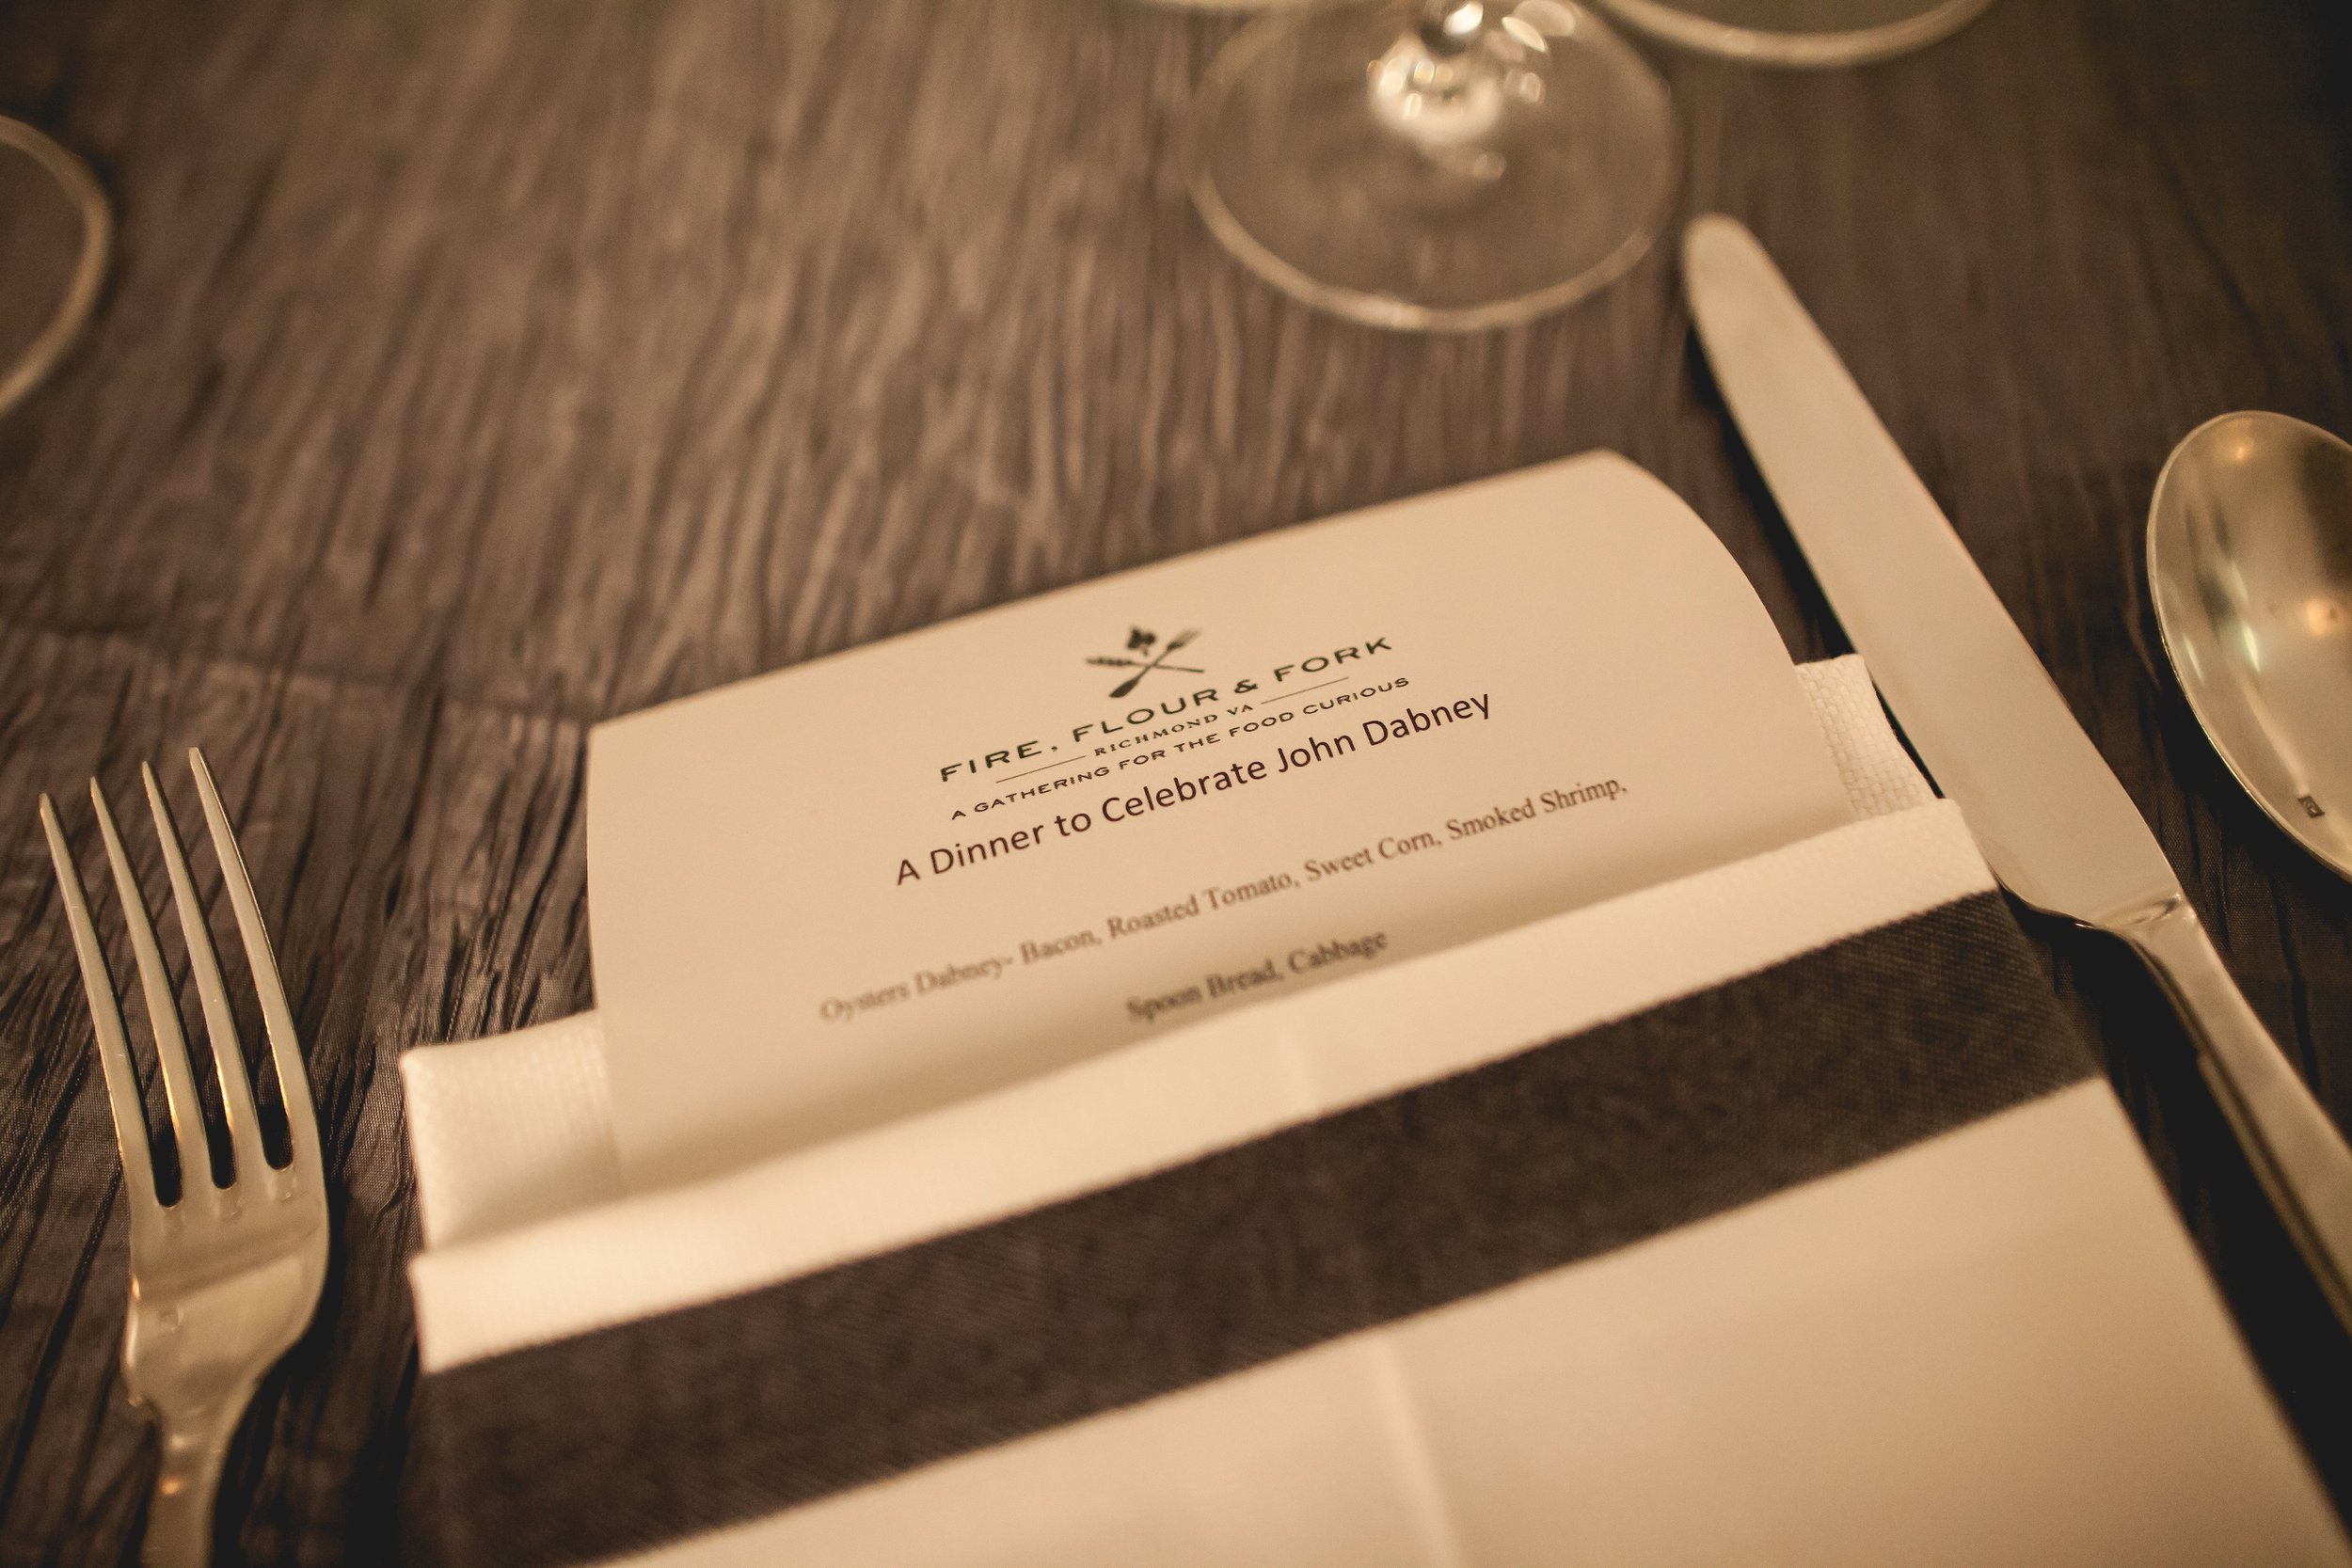 A glimpse of the menu from the first John Dabney Dinner in 2015.